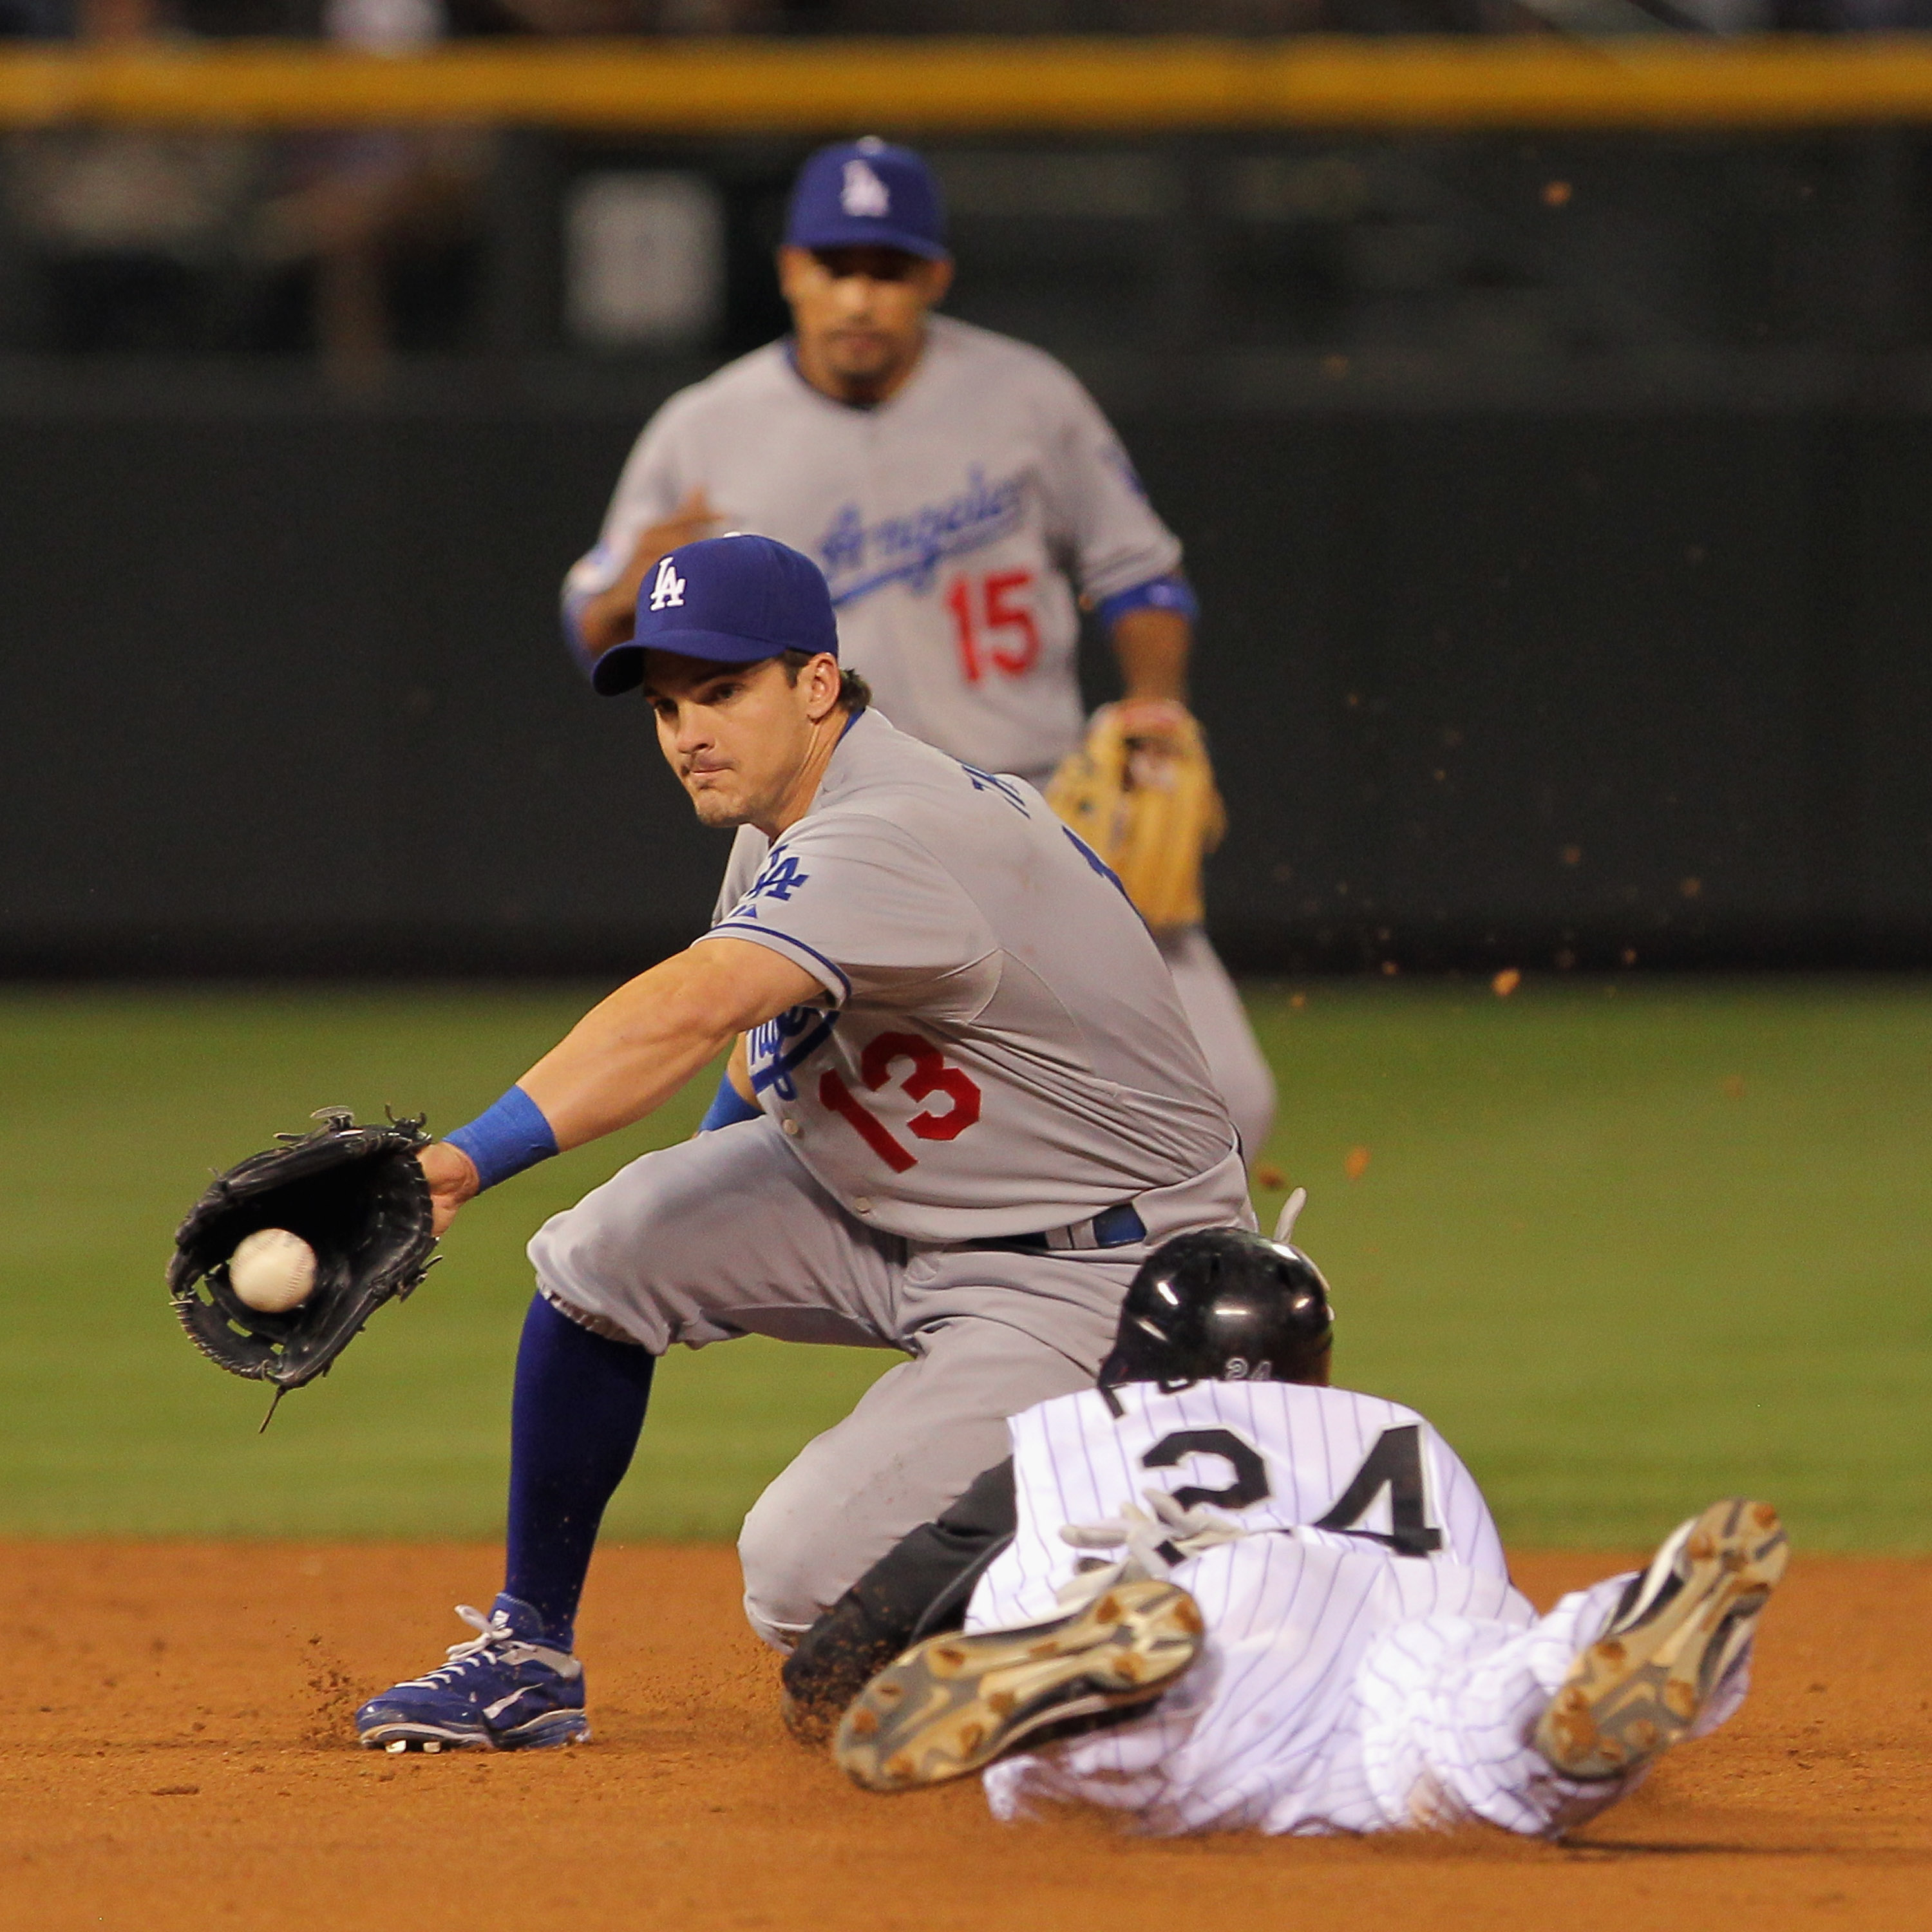 Ryan Theroit gets added to the Cardinals middle infield.